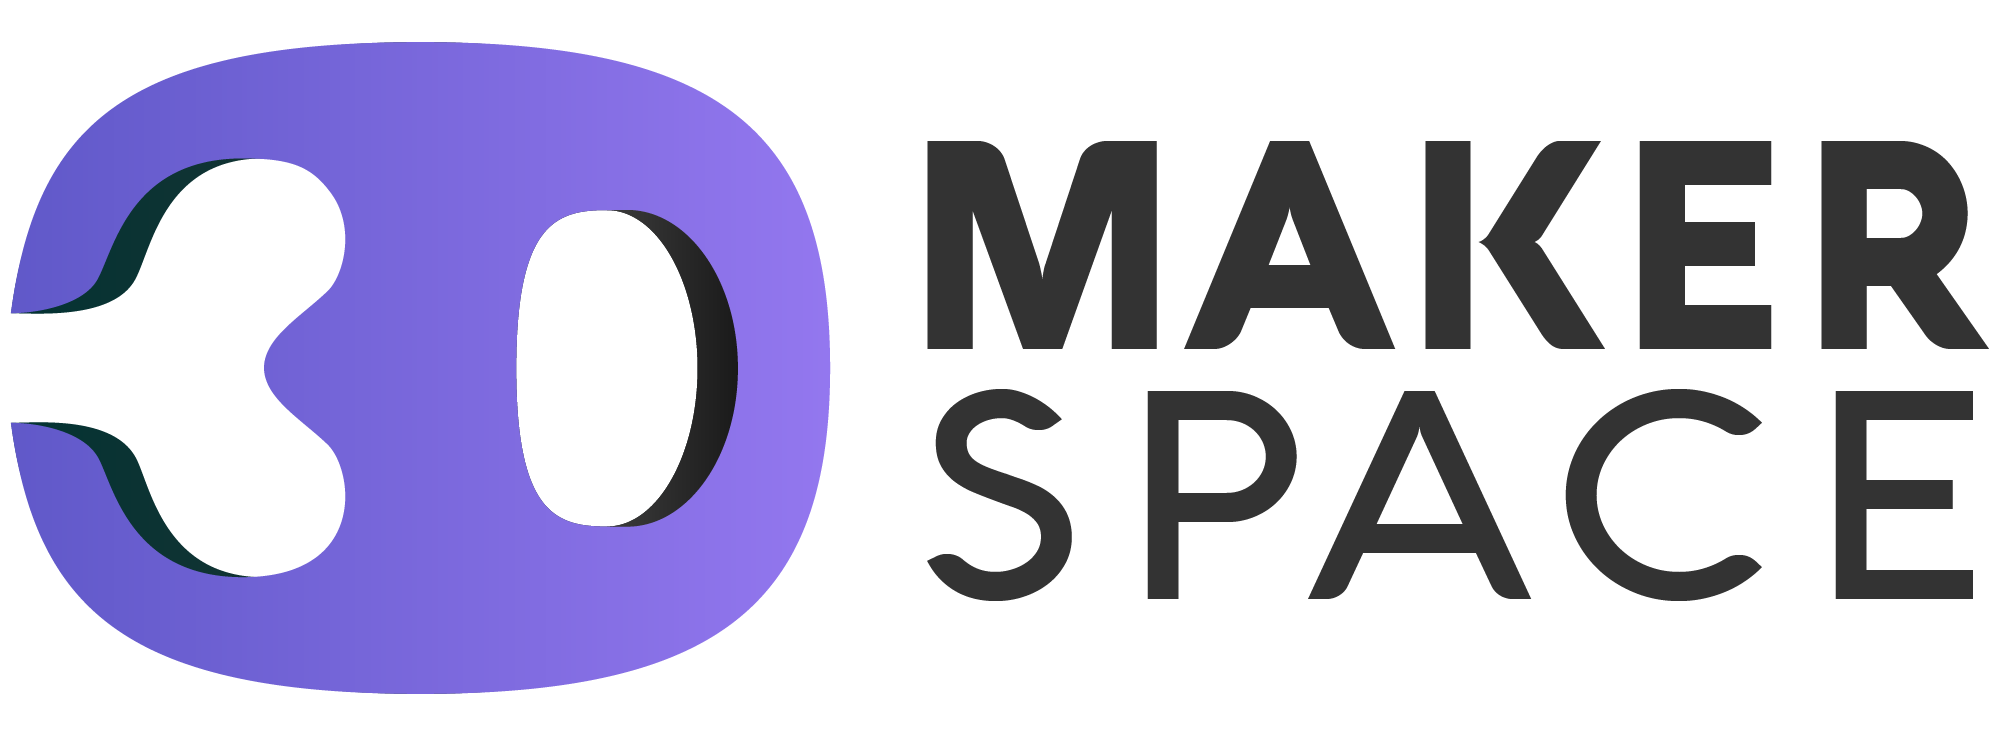 3DMAKER.SPACE